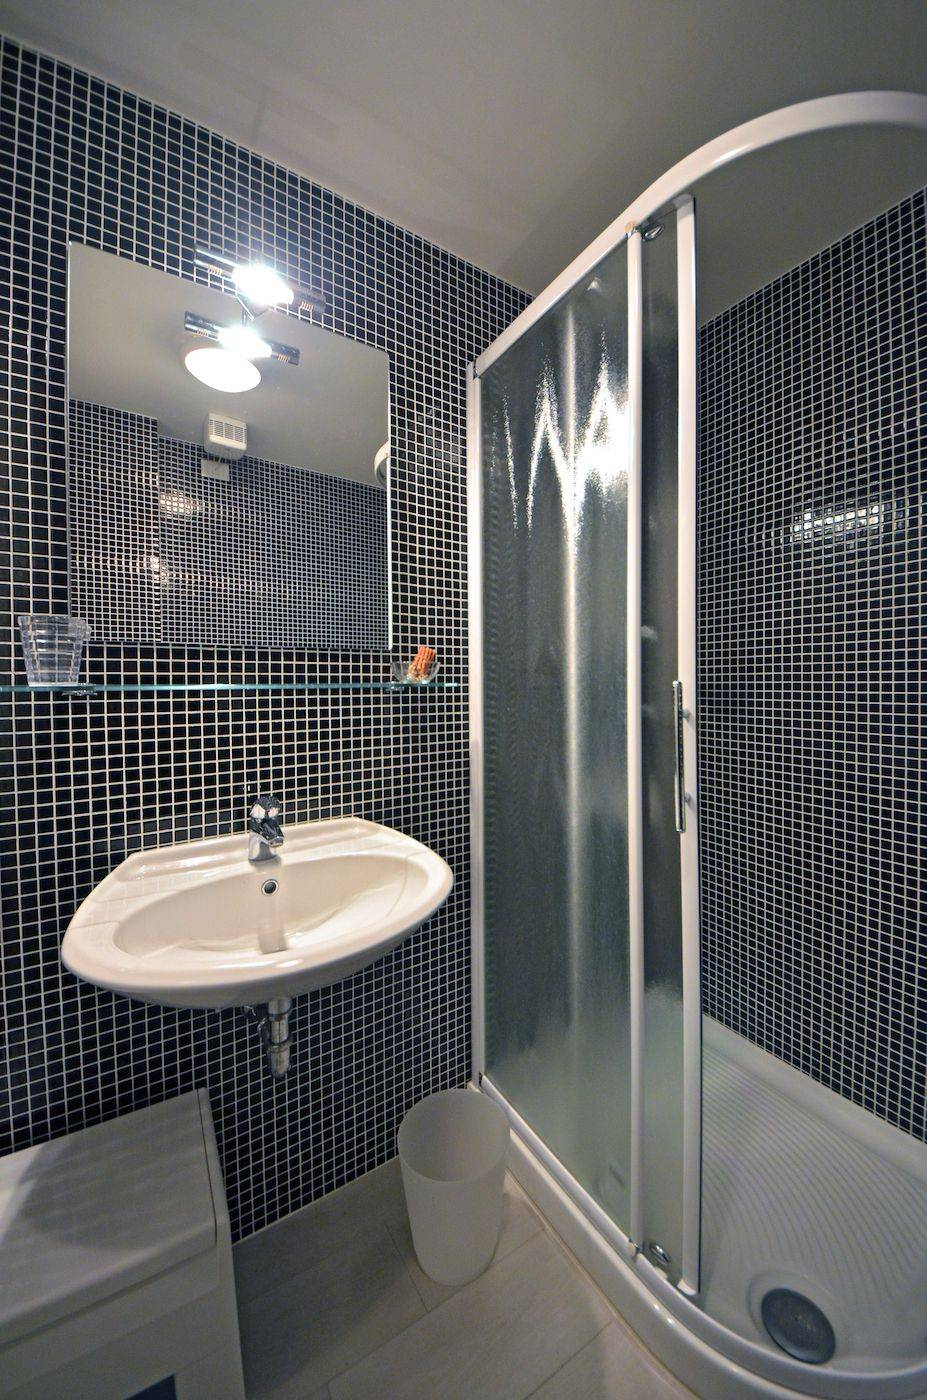 en-suite bathroom with shower and washing machine